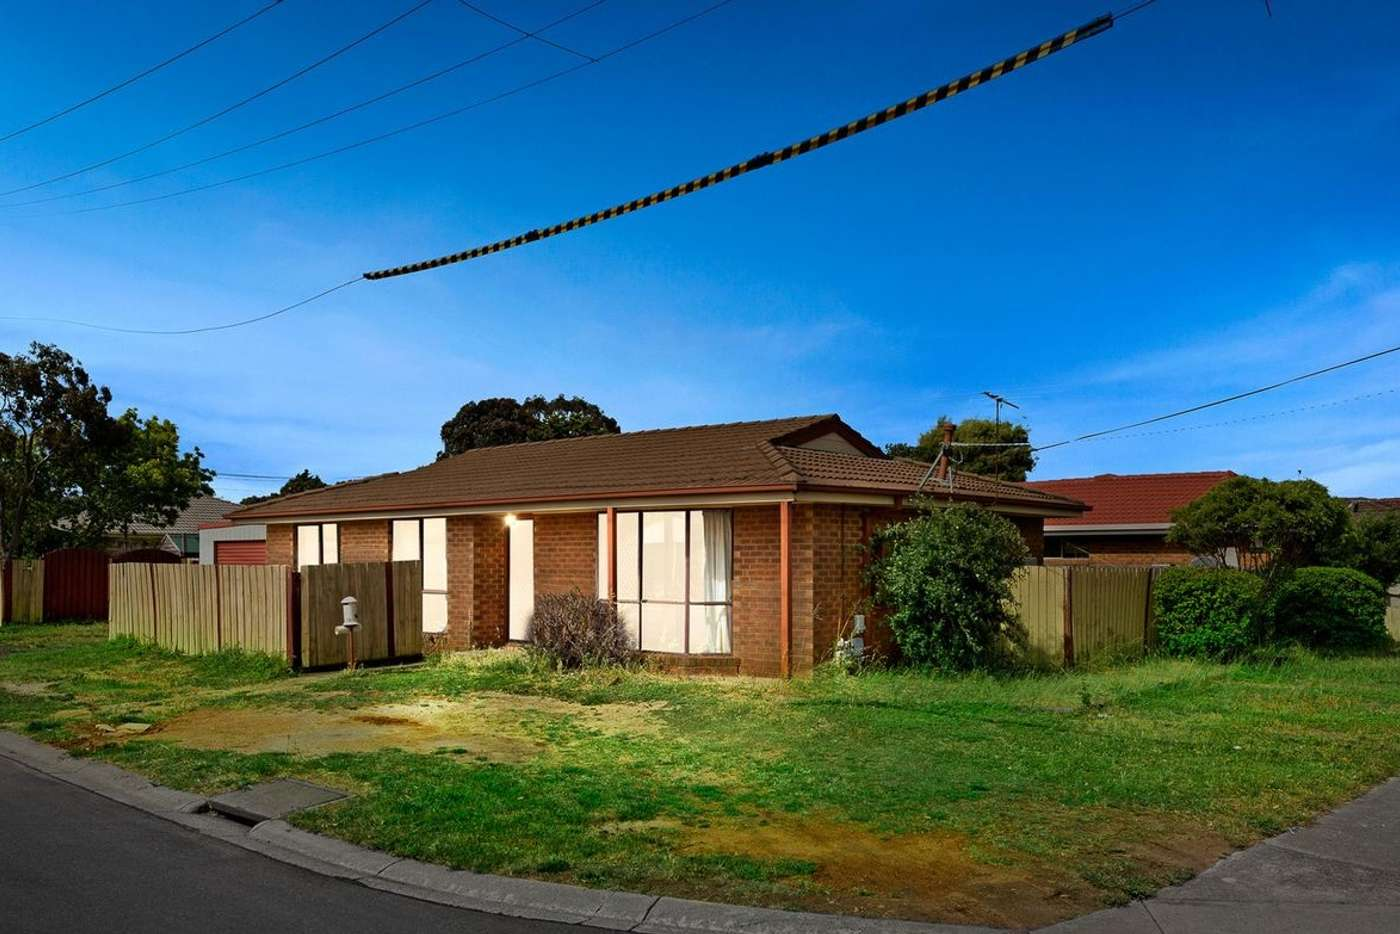 Main view of Homely house listing, 13 Millewa Way, Wyndham Vale VIC 3024